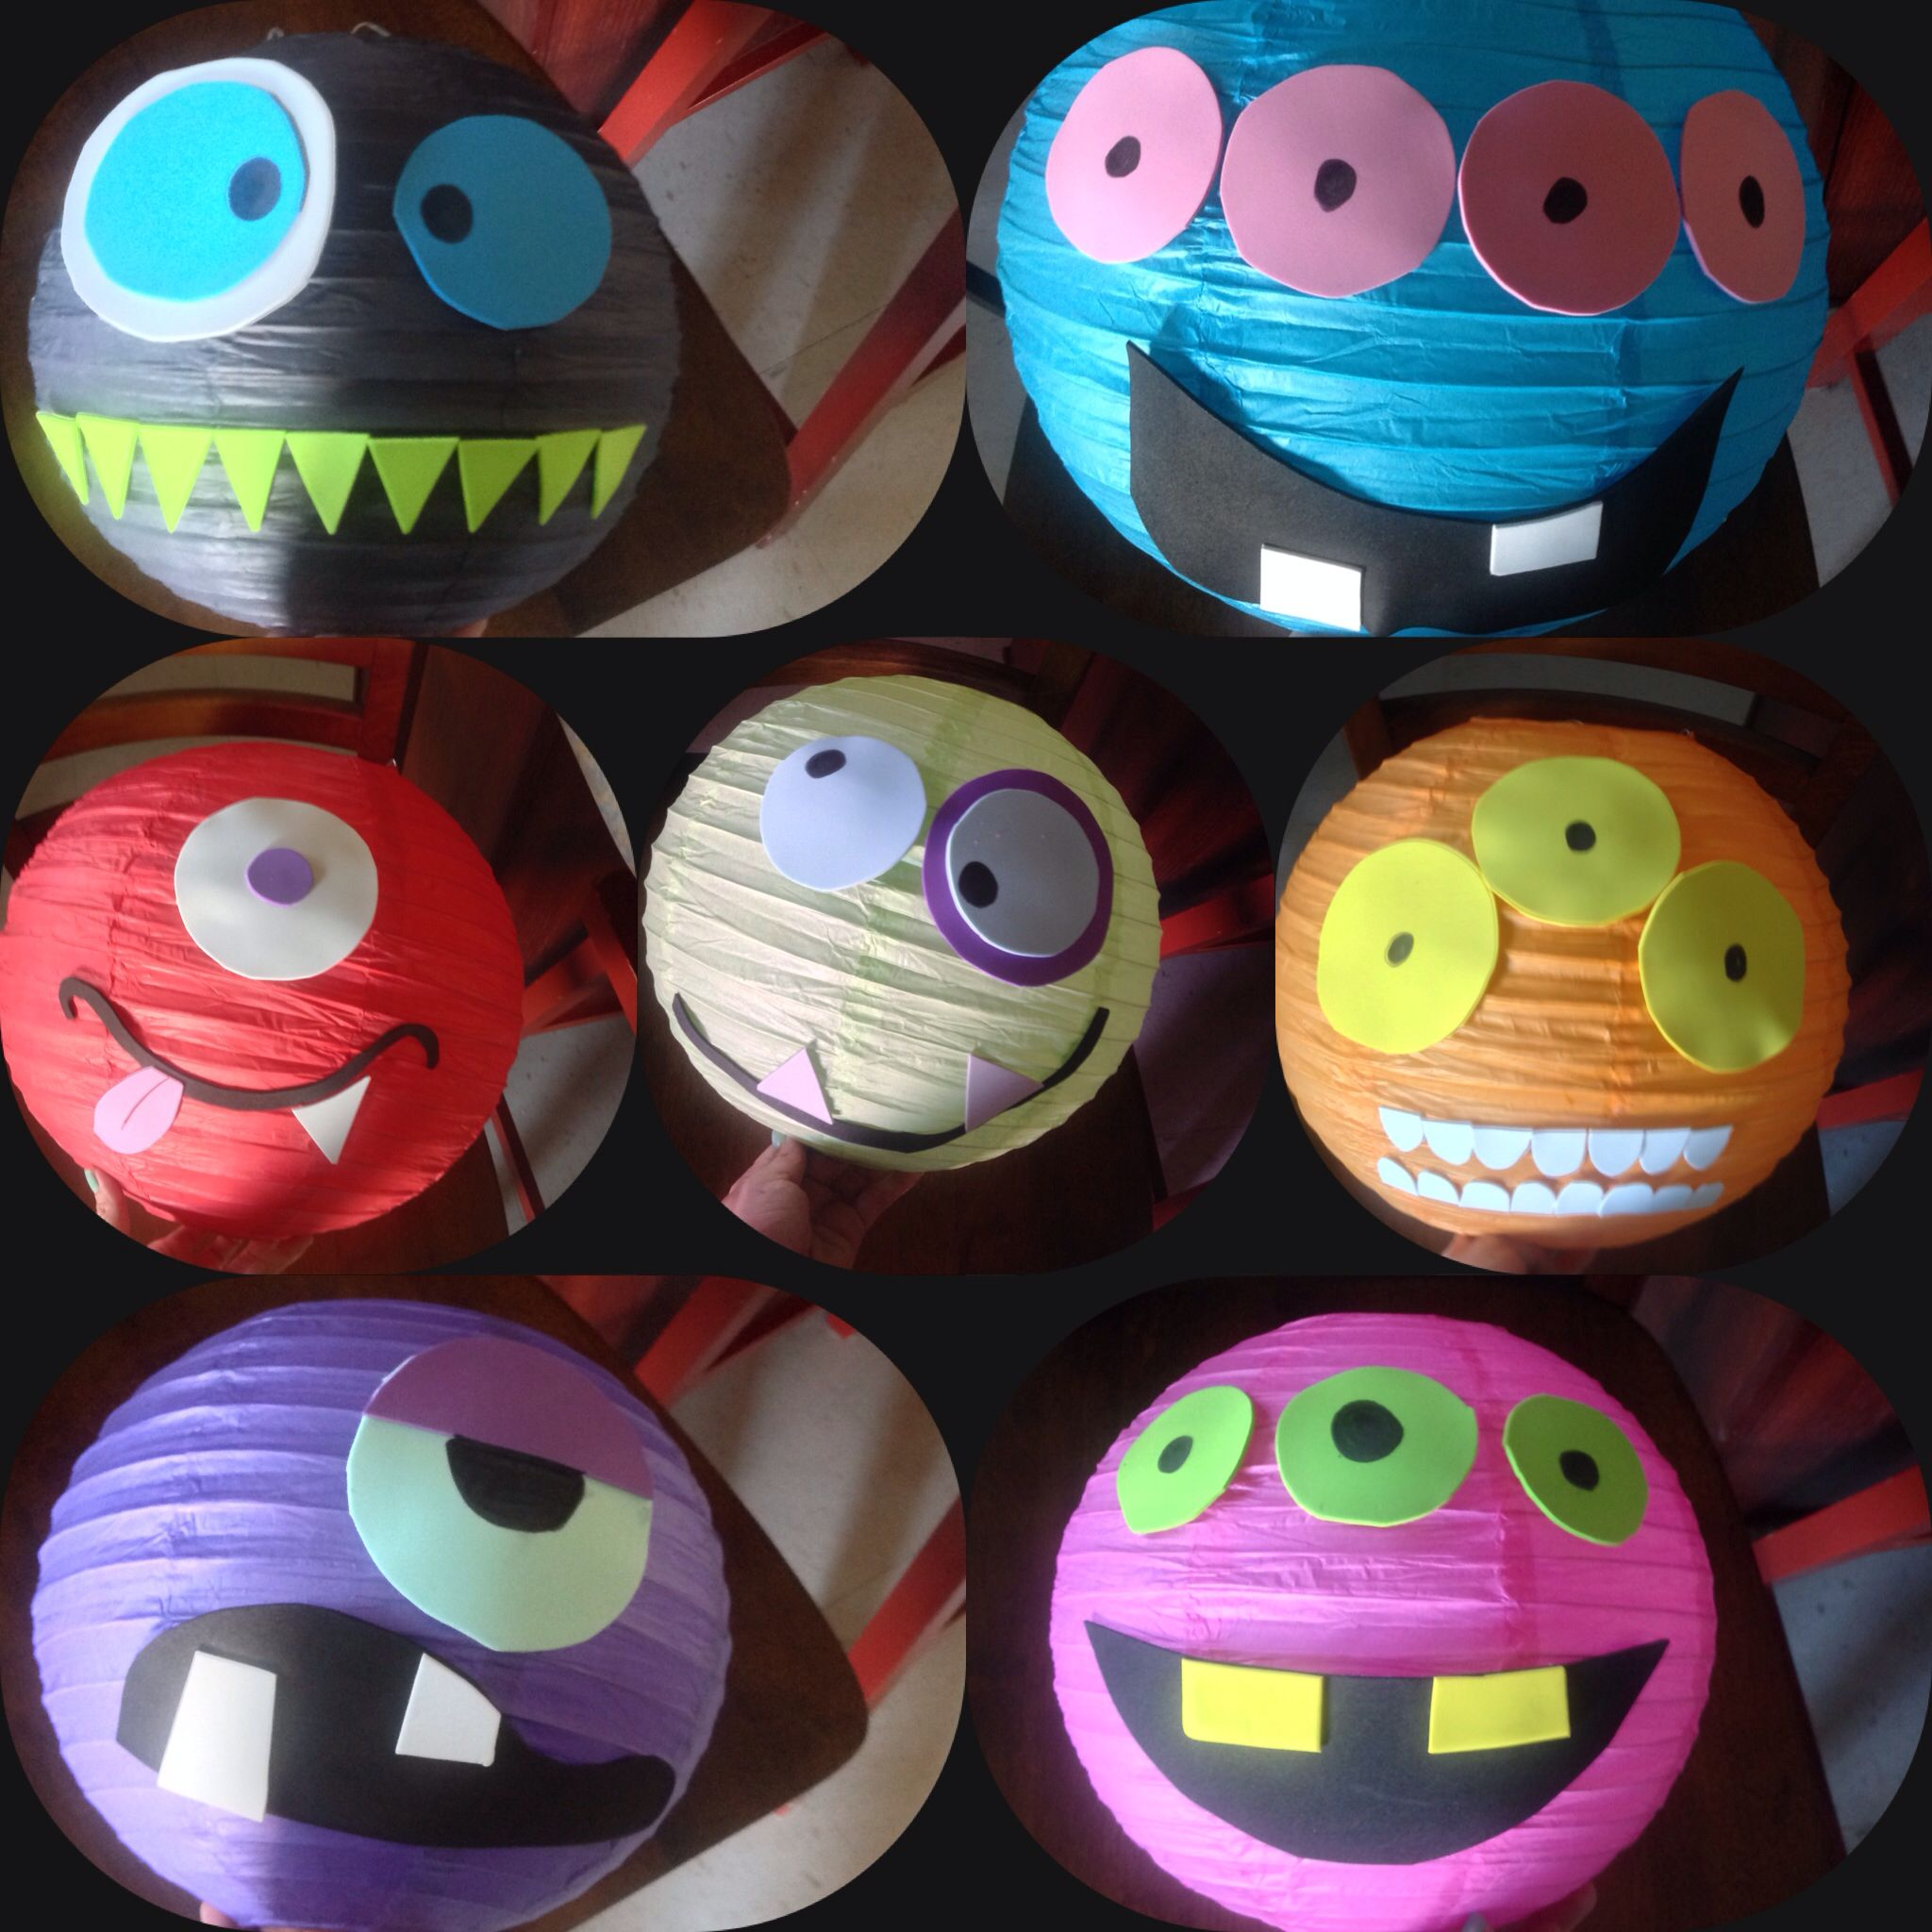 Paper lanterns and sticky foam diy monster party decorations ...